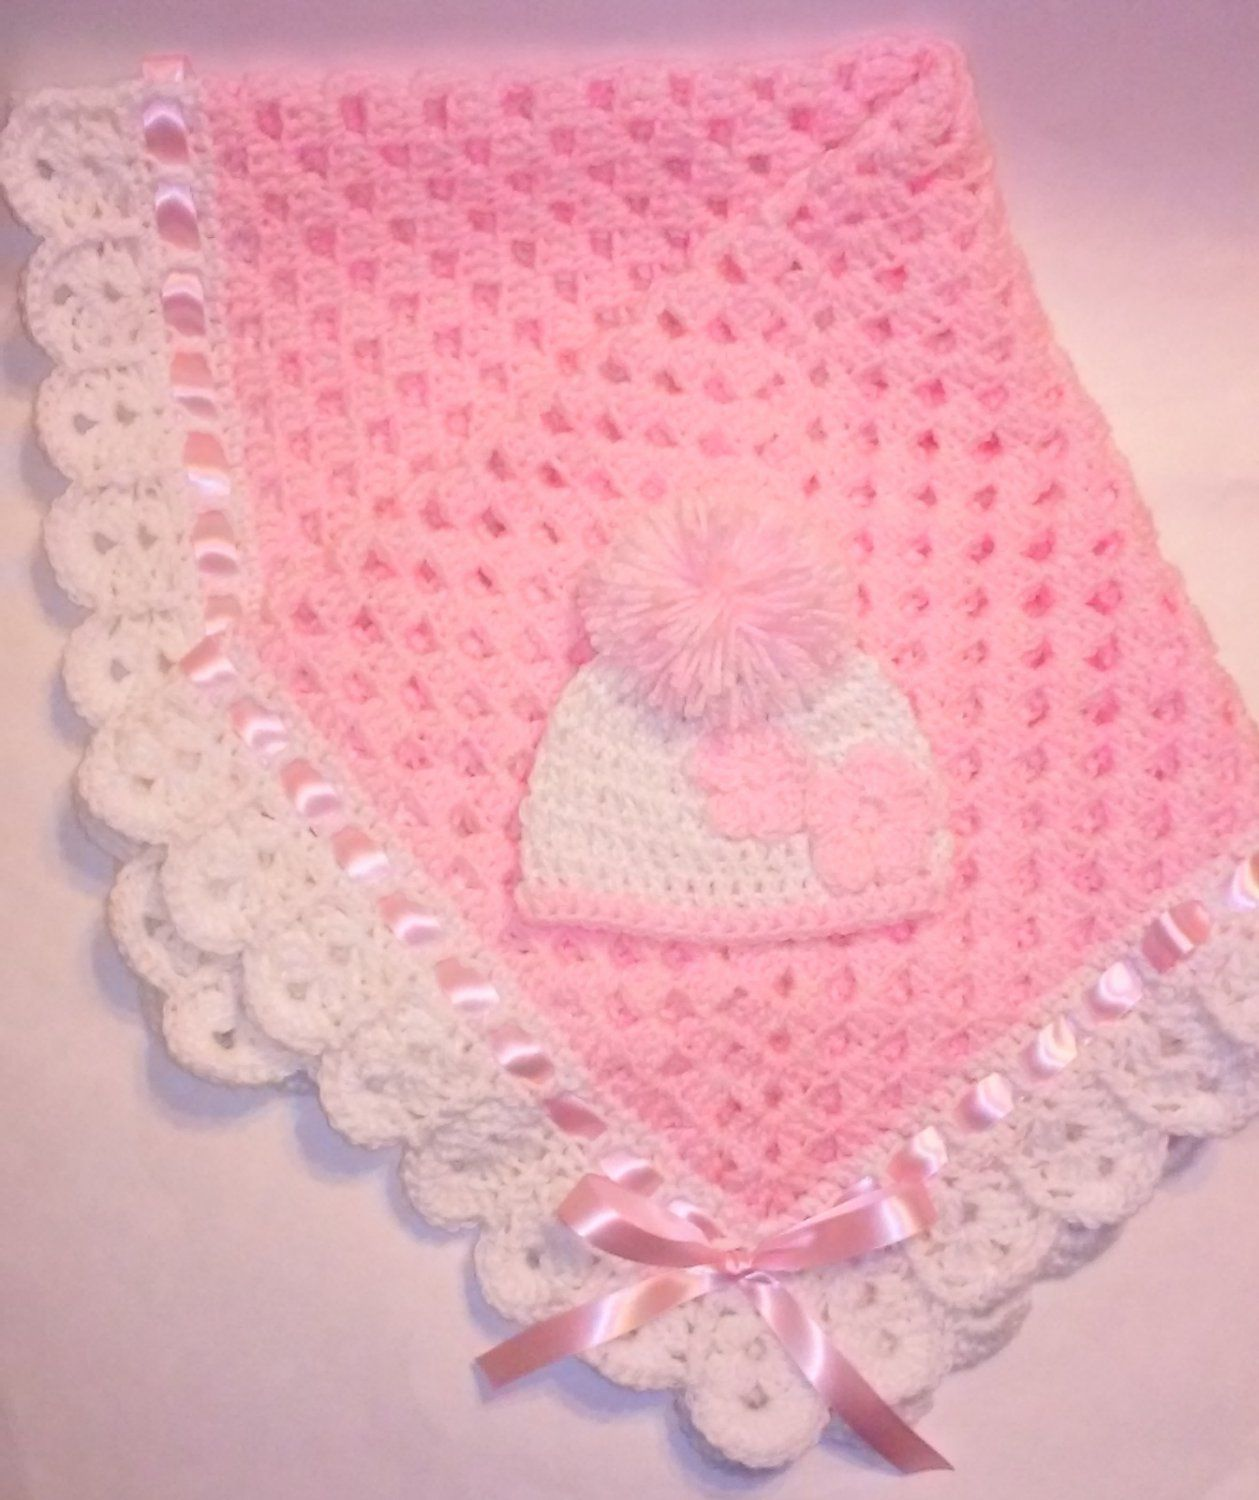 Very soft and cuddly pink granny square blanket with white crocheted ...